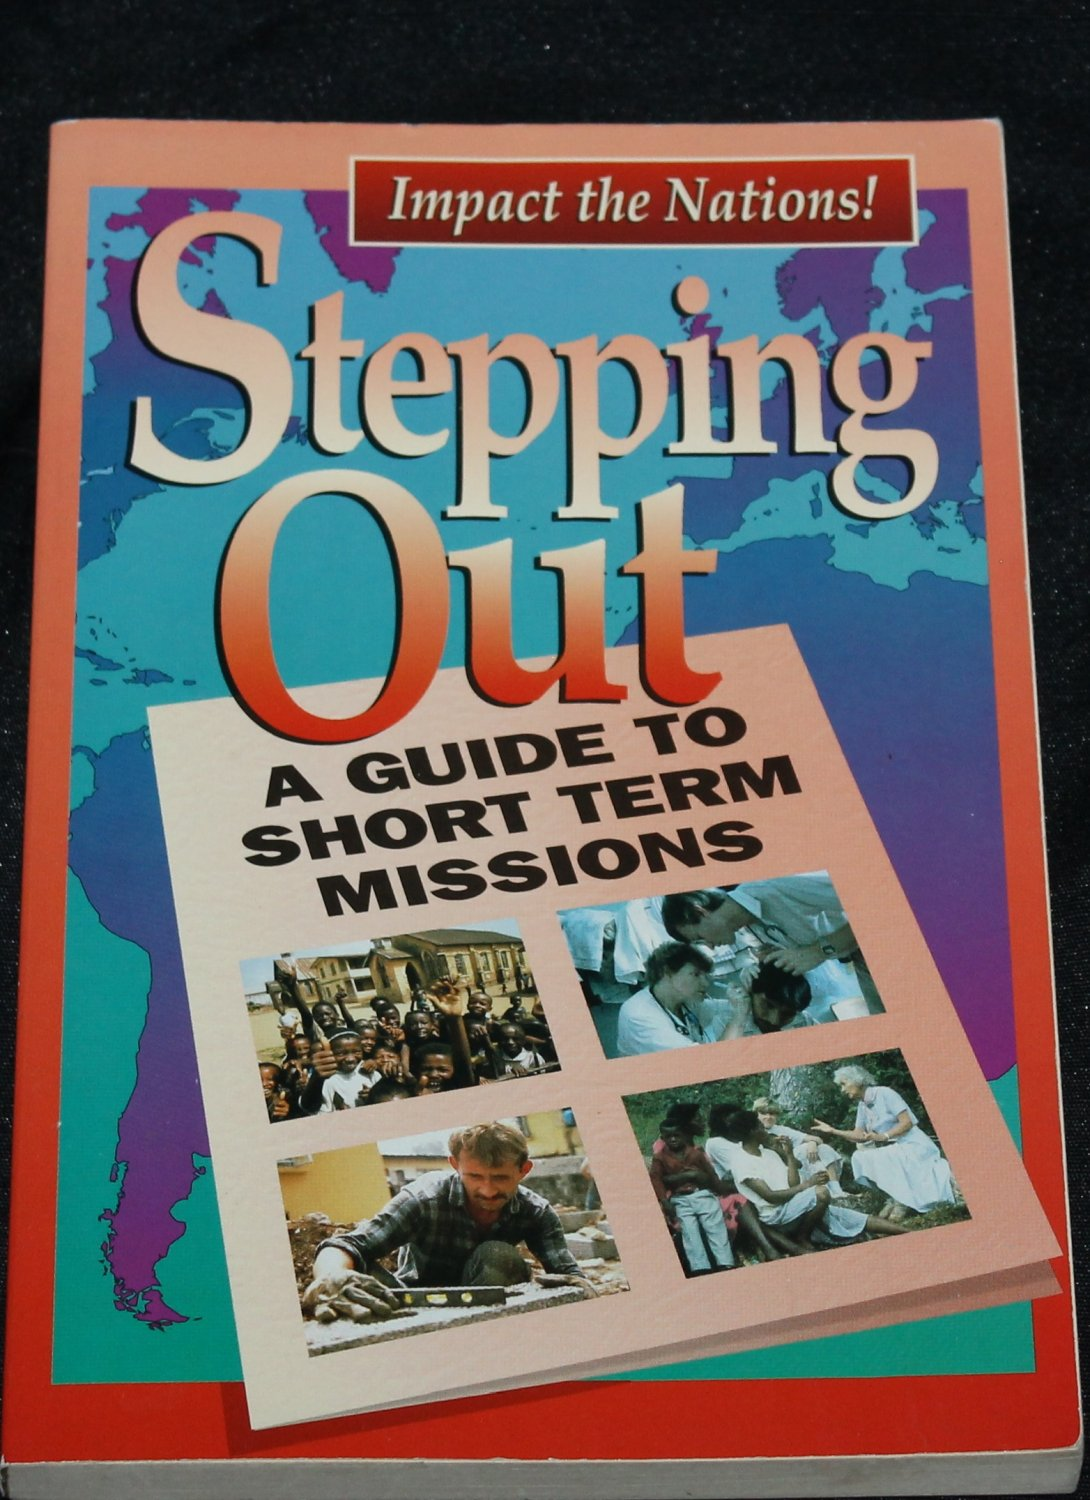 Stepping Out - A Guide to Short Term Missions - Christian religion Jesus God religious book